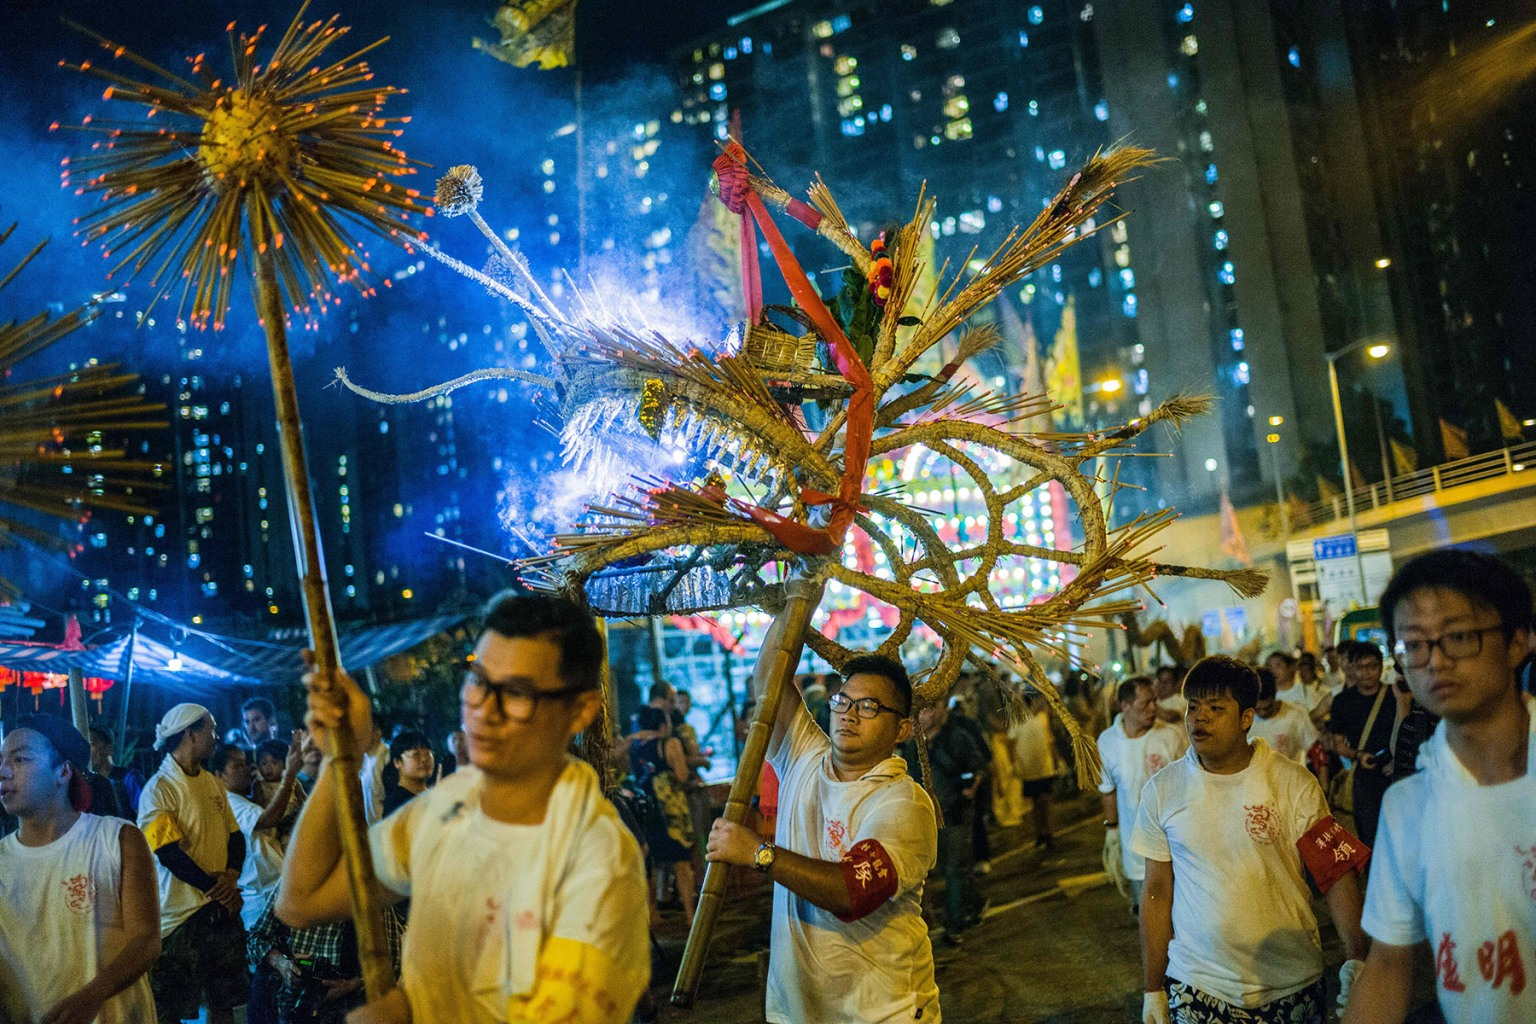 Performers carry an ornate straw-stuffed dragon stuck with hundreds of incense sticks as part of a mid-autumn festival celebration in Pok Fu Lam village in Hong Kong on Sept. 24. ANTHONY WALLACE/AFP/Getty Images